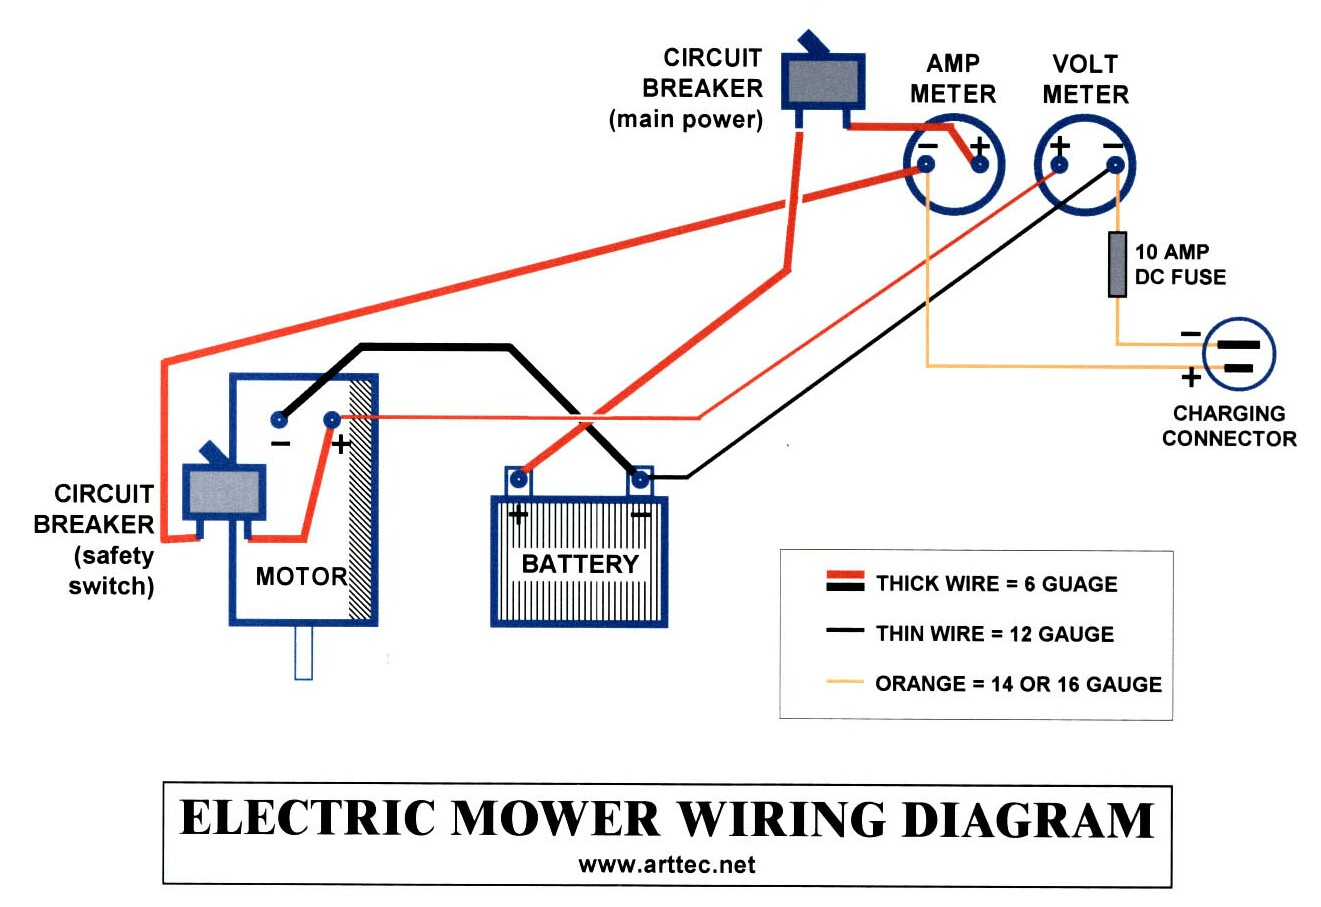 hight resolution of voltage meter wiring diagram wiring diagram paper12v voltmeter wire diagram wiring diagram week voltage meter wiring